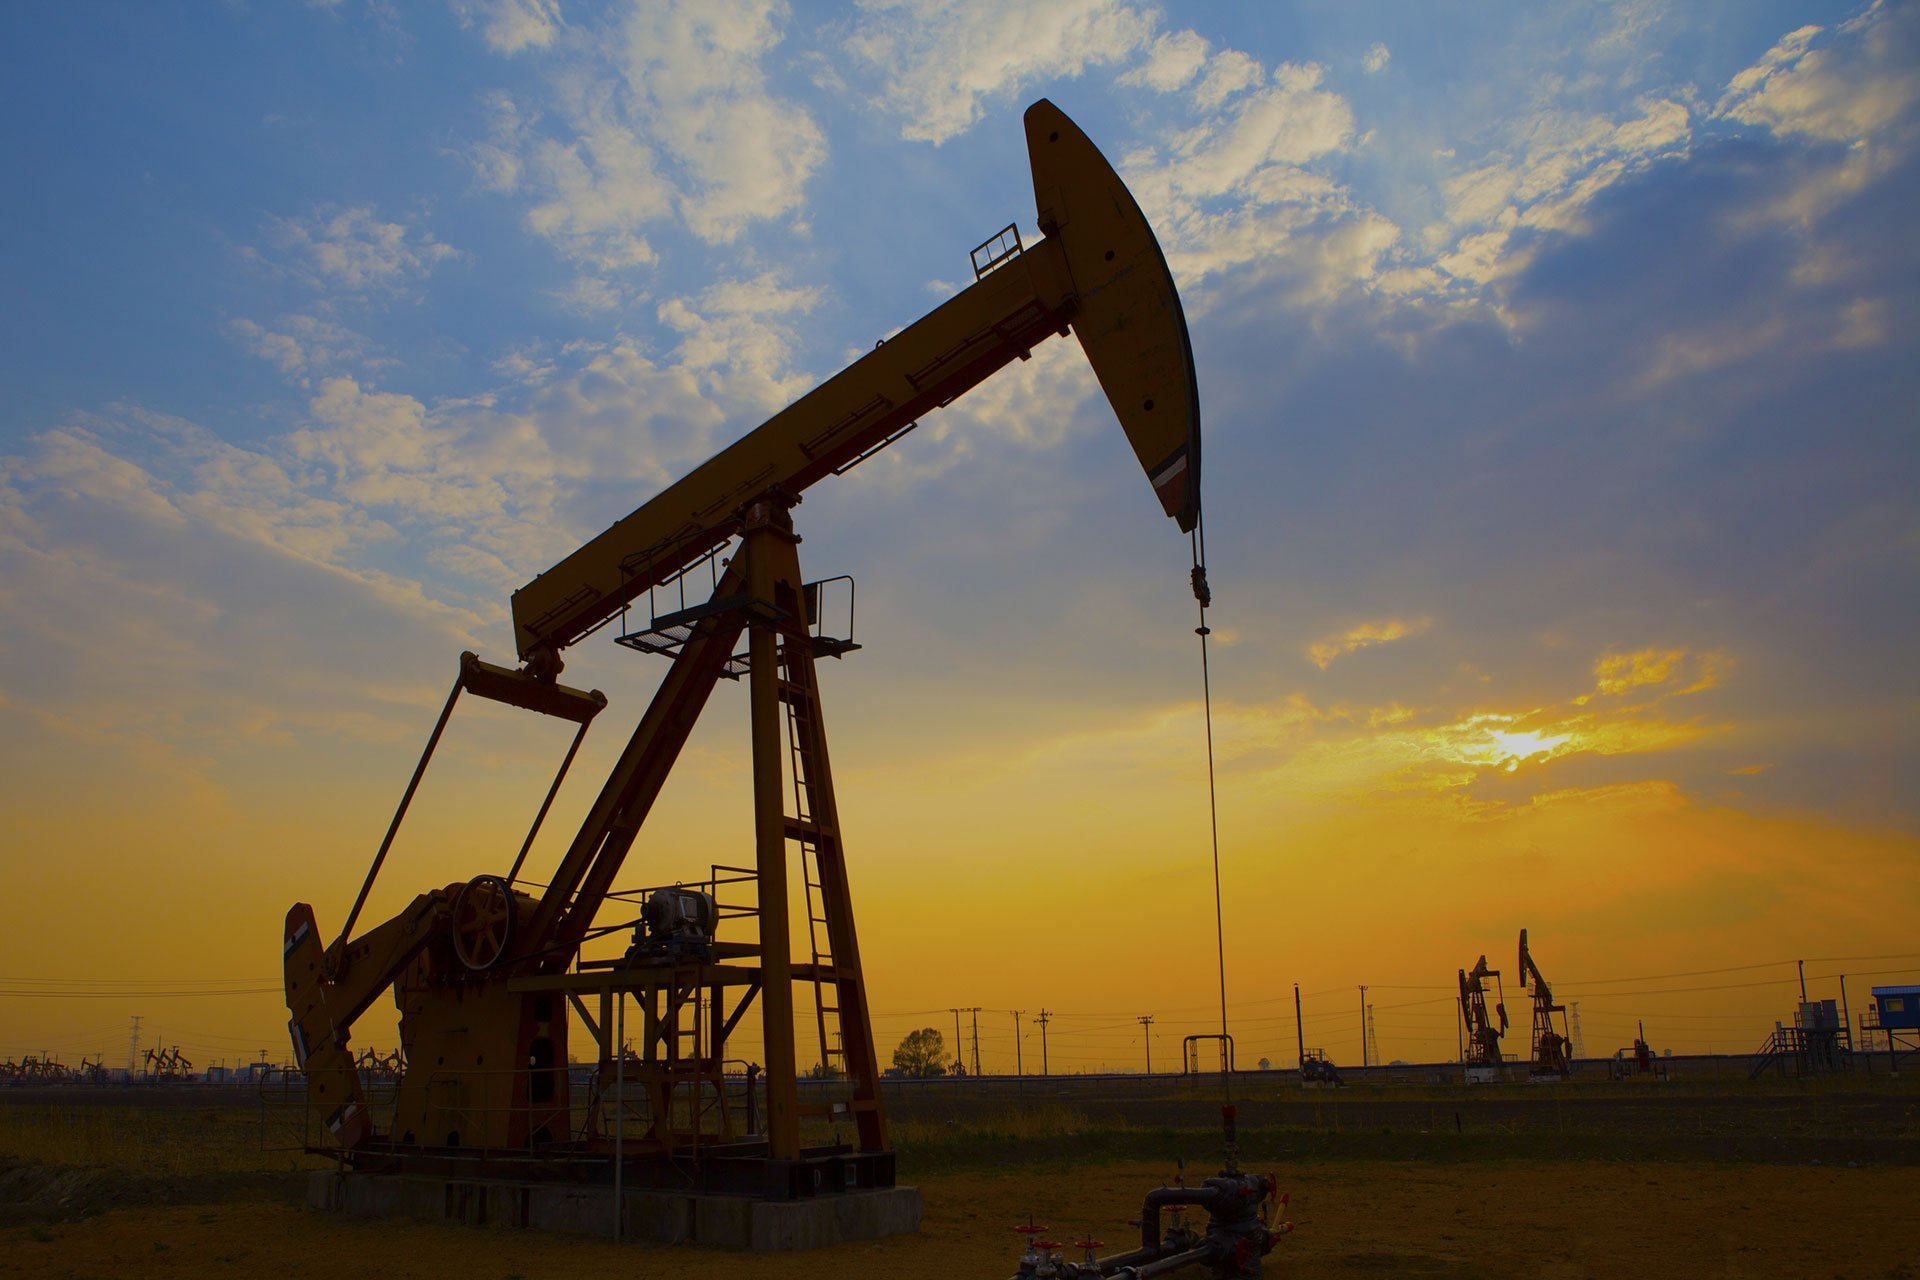 Roustabout In Midland And Kenedy Tx: Oil Field Services Midland, Odessa, & Snyder, TX